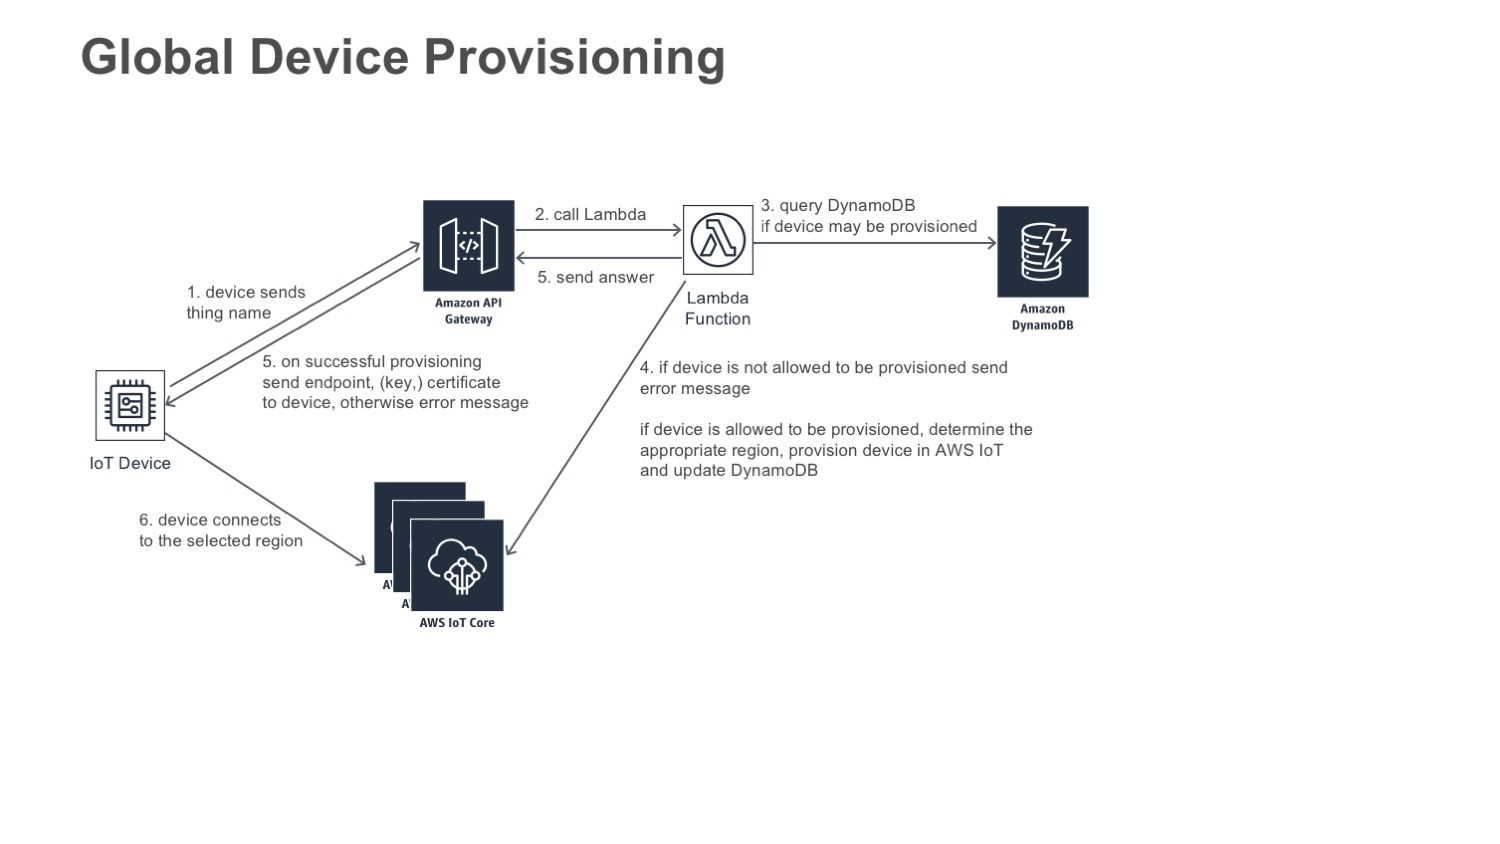 Provision Devices Globally with AWS IoT | The Internet of Things on